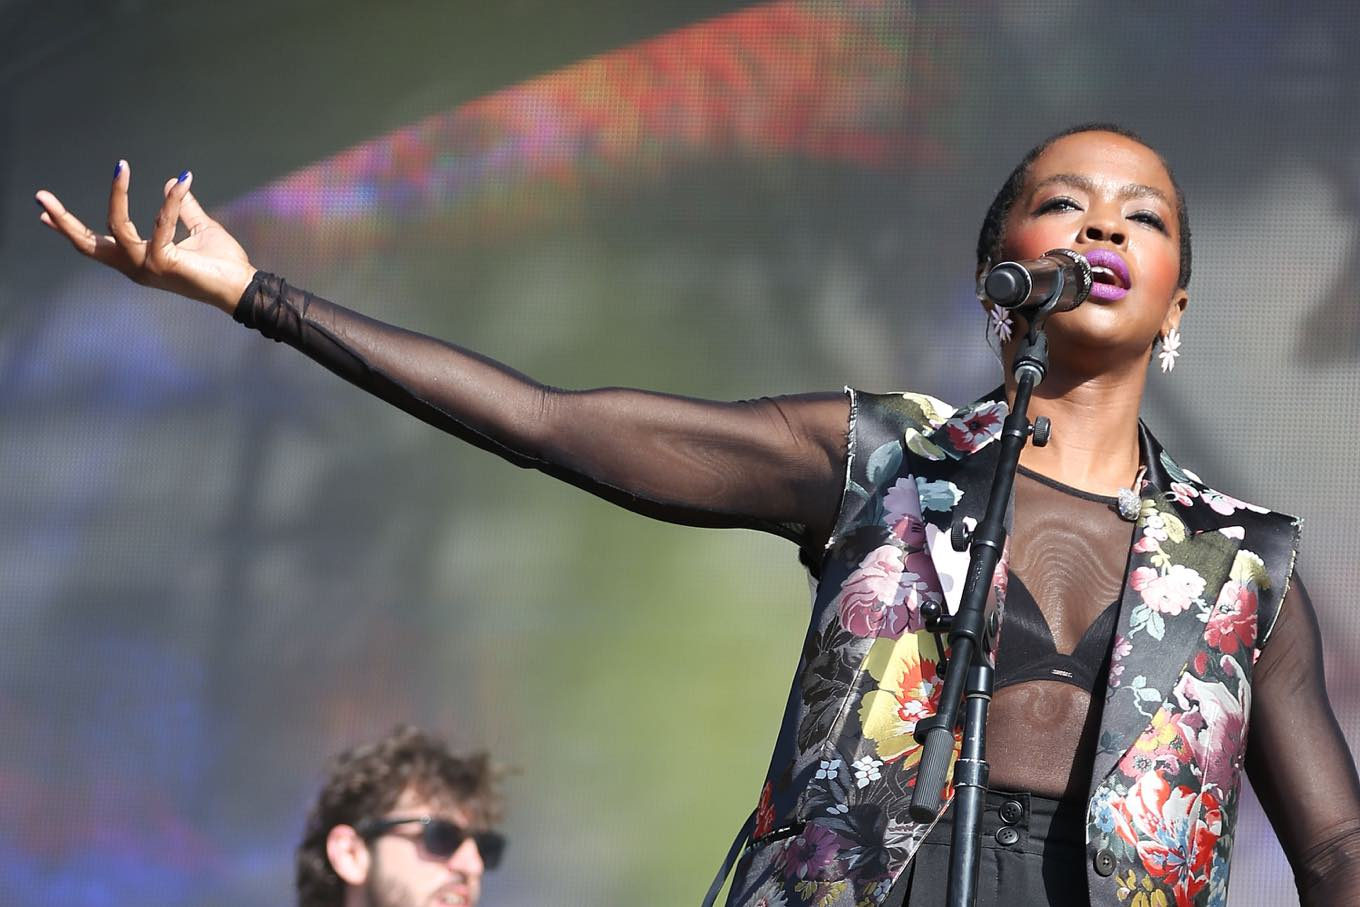 Get Pumped to See Ms. Lauryn Hill with Her Most Motivating Song Lyrics